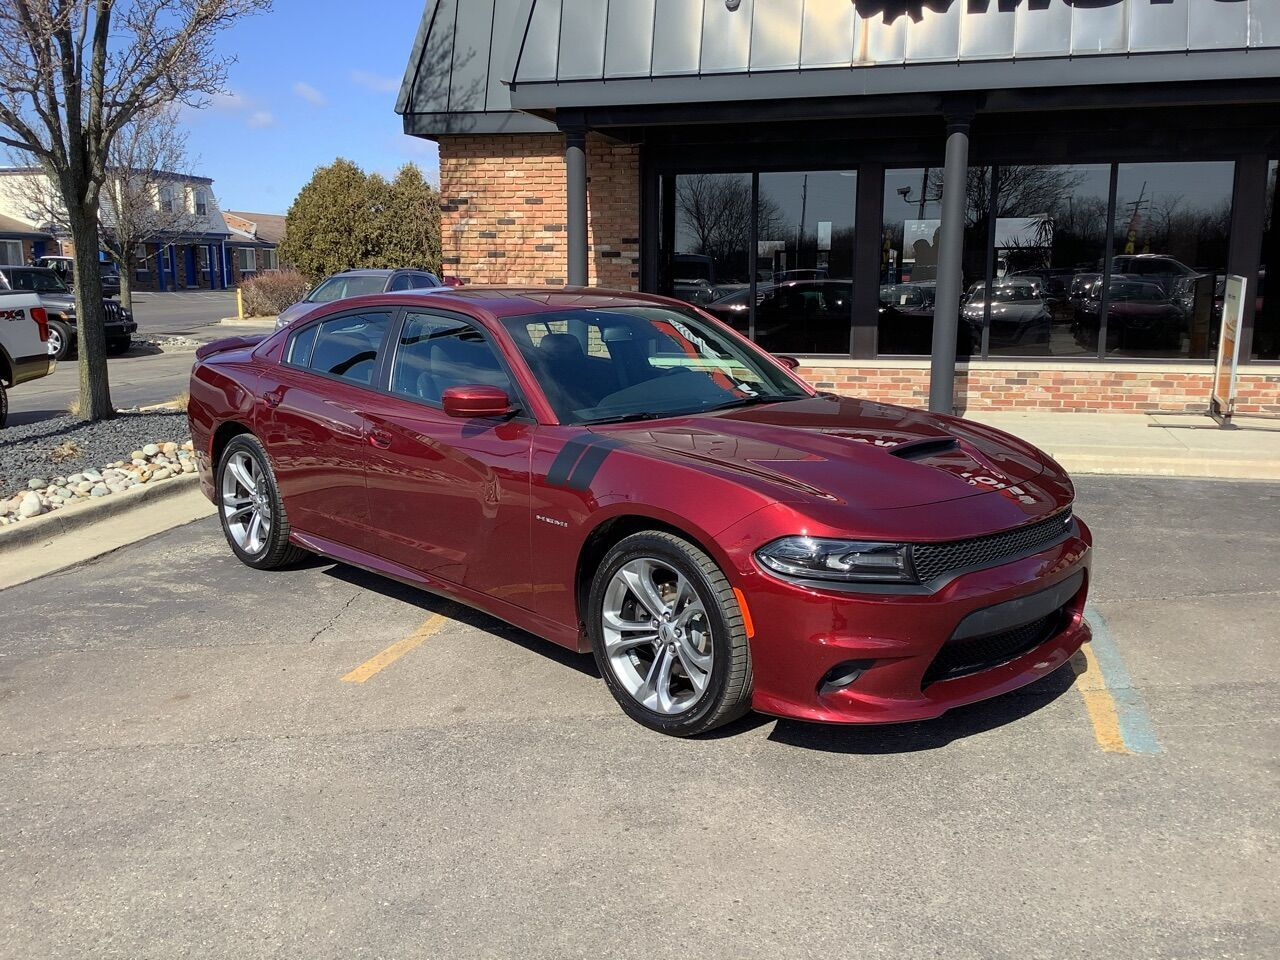 2021 Dodge Charger R/T 4dr Sedan Chesterfield MI